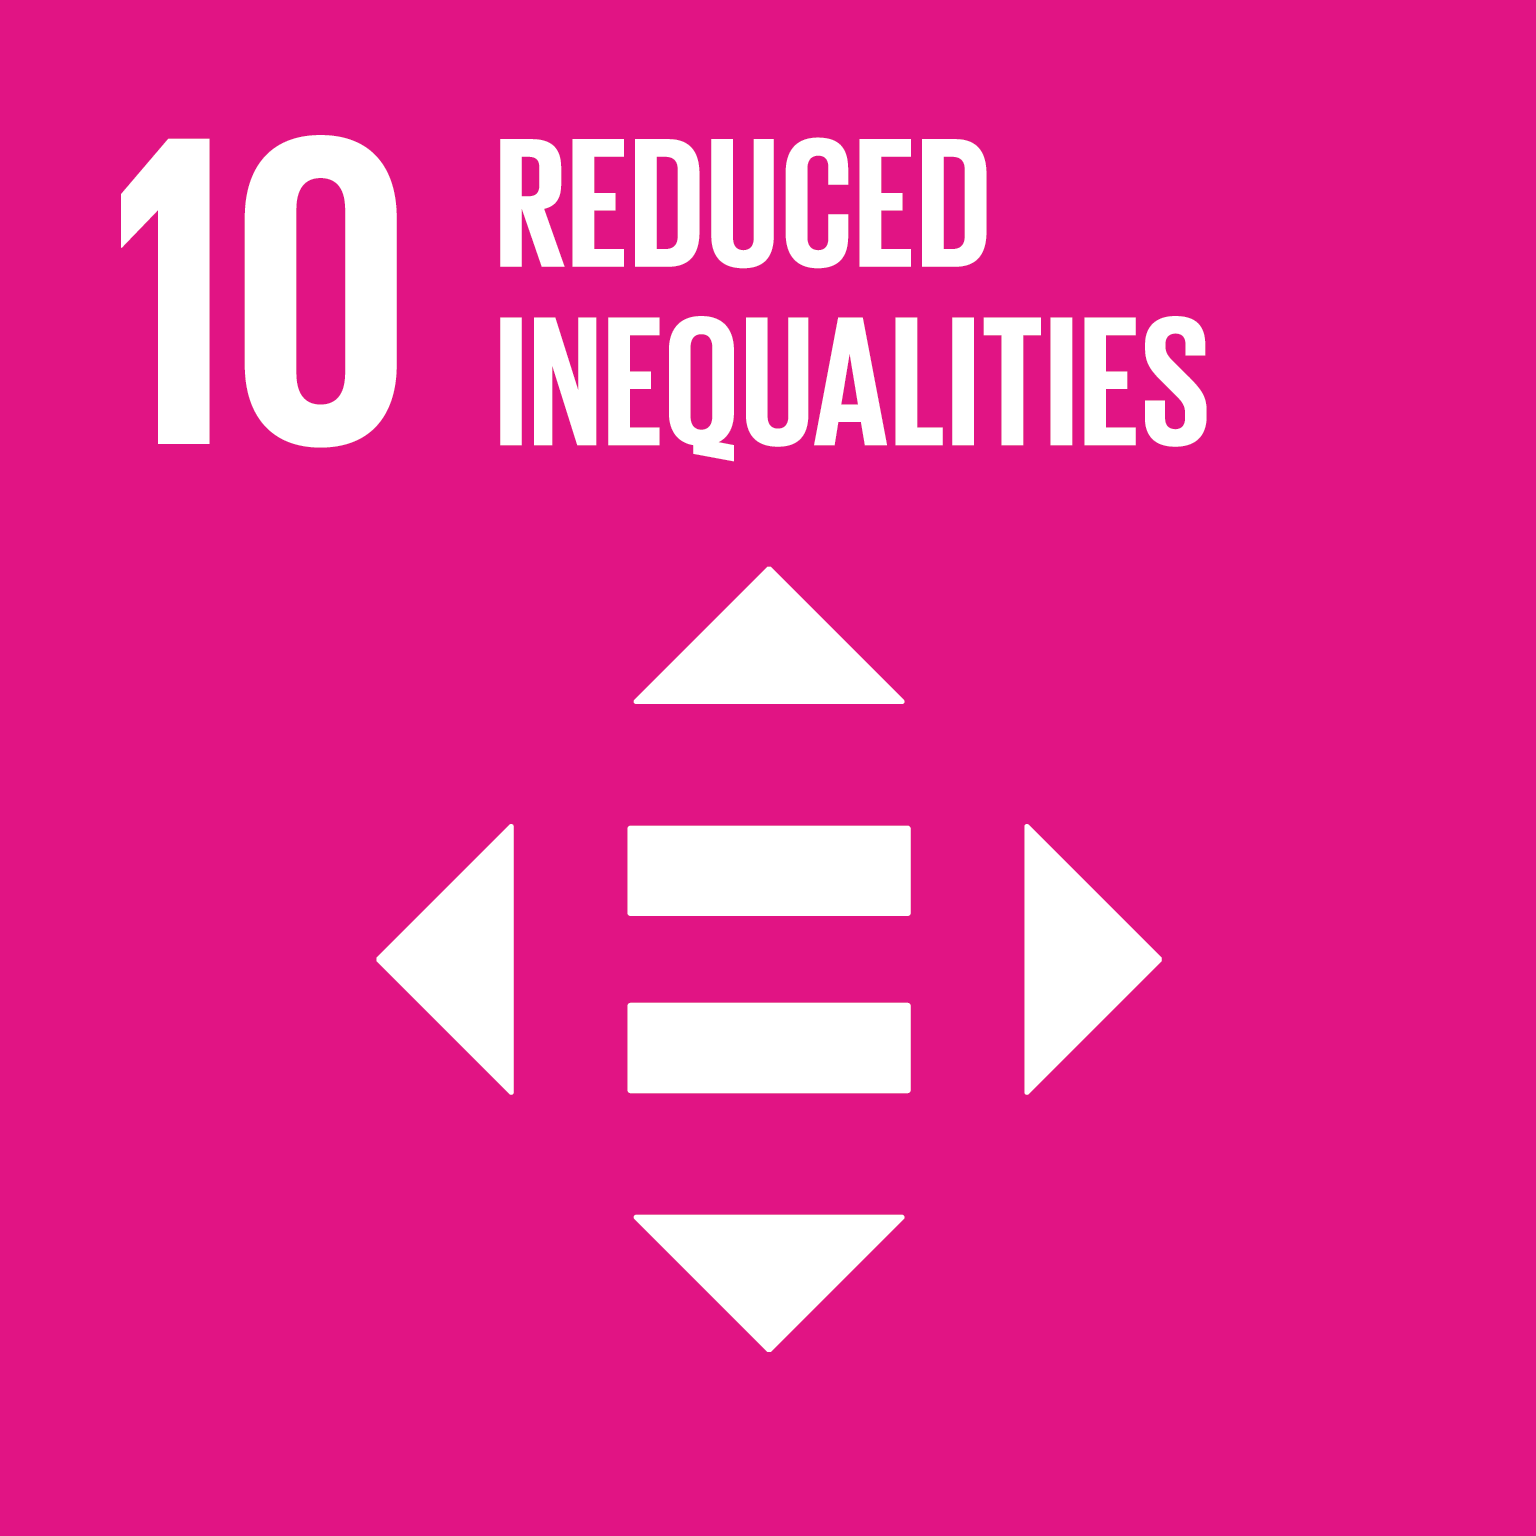 SDG10: Reduced Inequalities